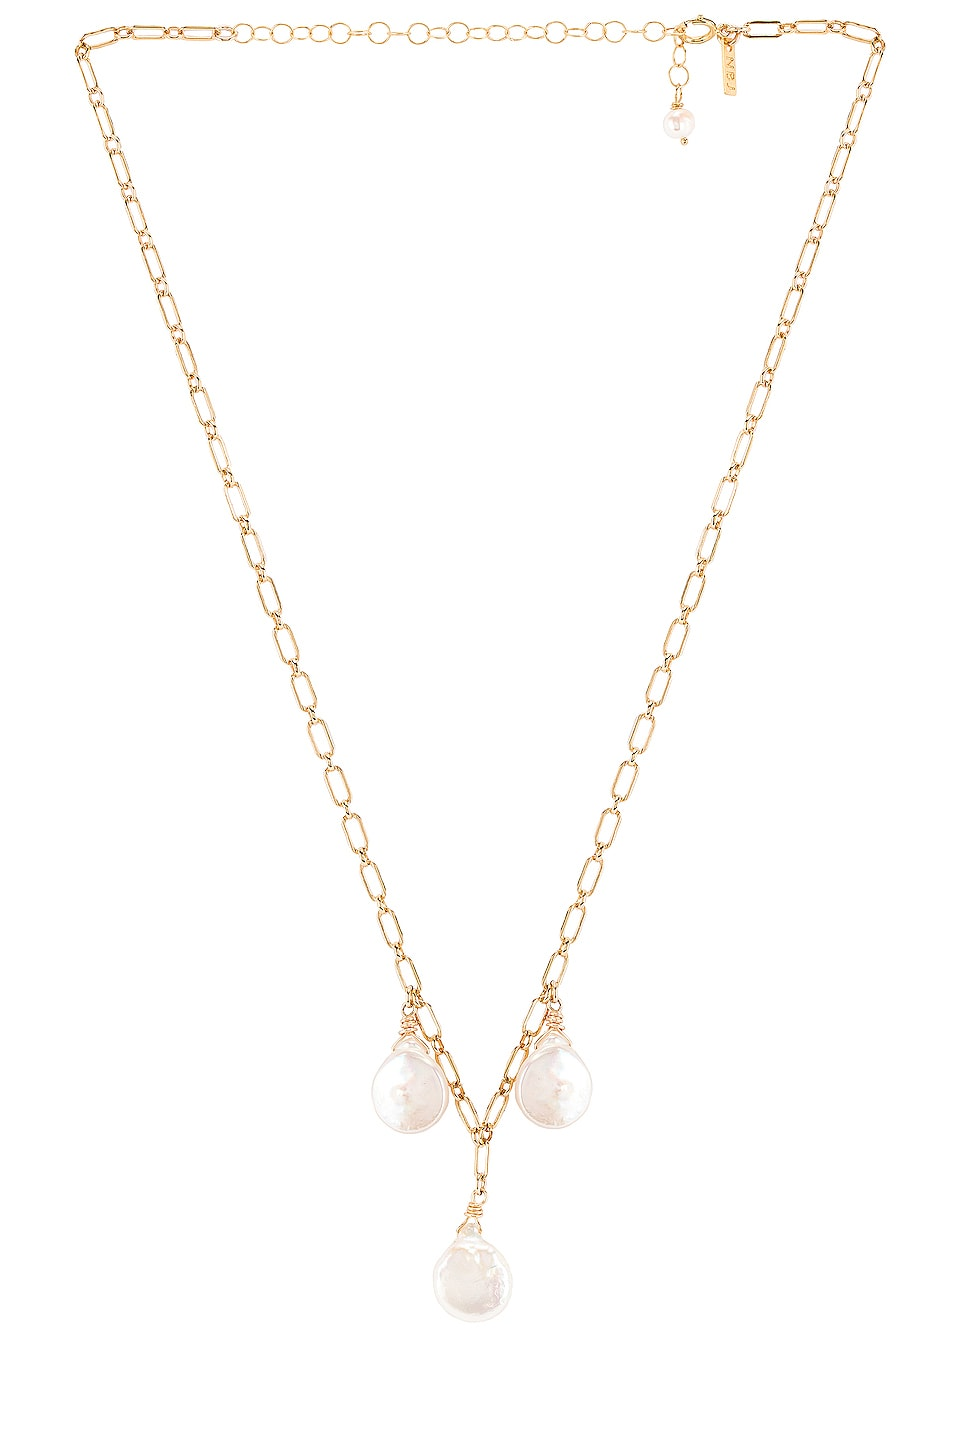 Natalie B Jewelry Pearls Of Wisdom Necklace in Gold